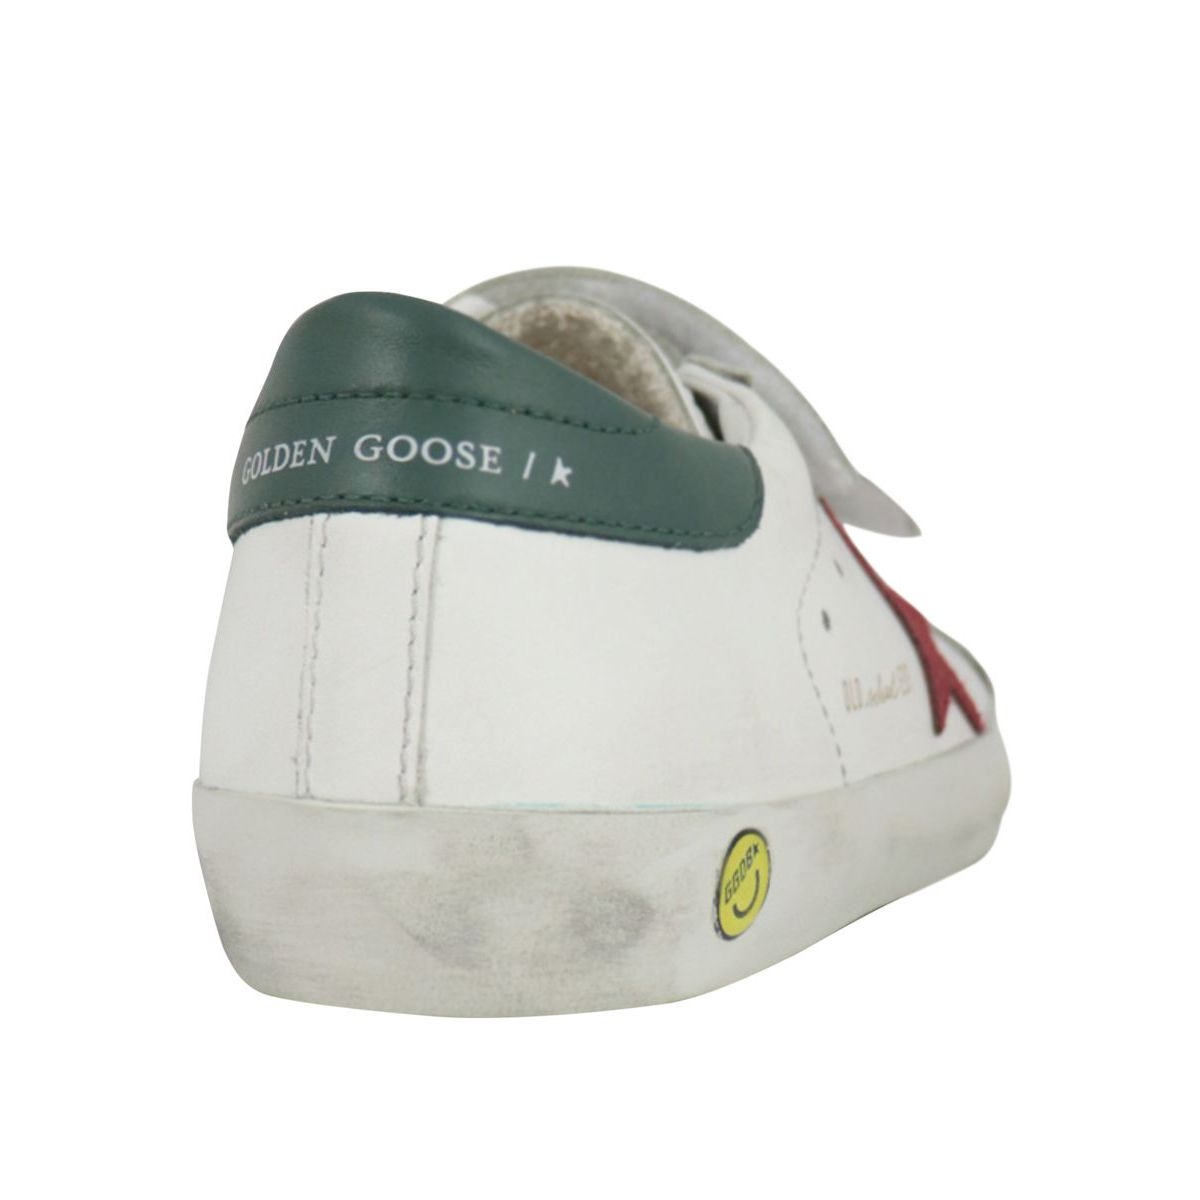 Old School leather sneakers with contrasting suede star White GOLDEN GOOSE